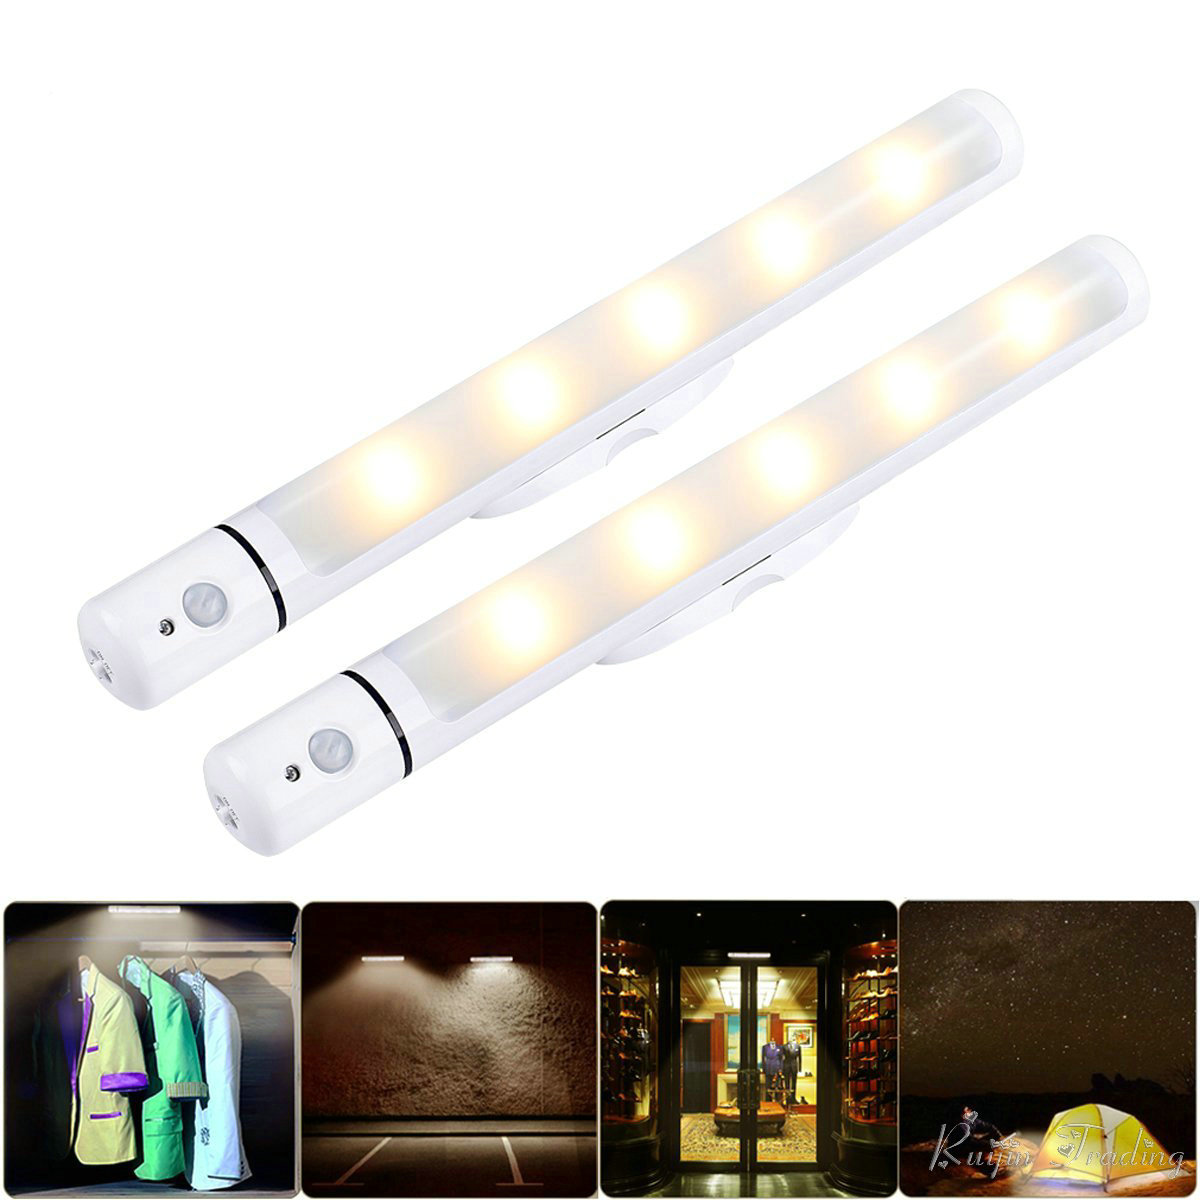 Wireless Battery Operated Light Camping LED Kast Kitchen Cabinet Garage Stairs Emergency Closet Lamp Flashlight Wall Night